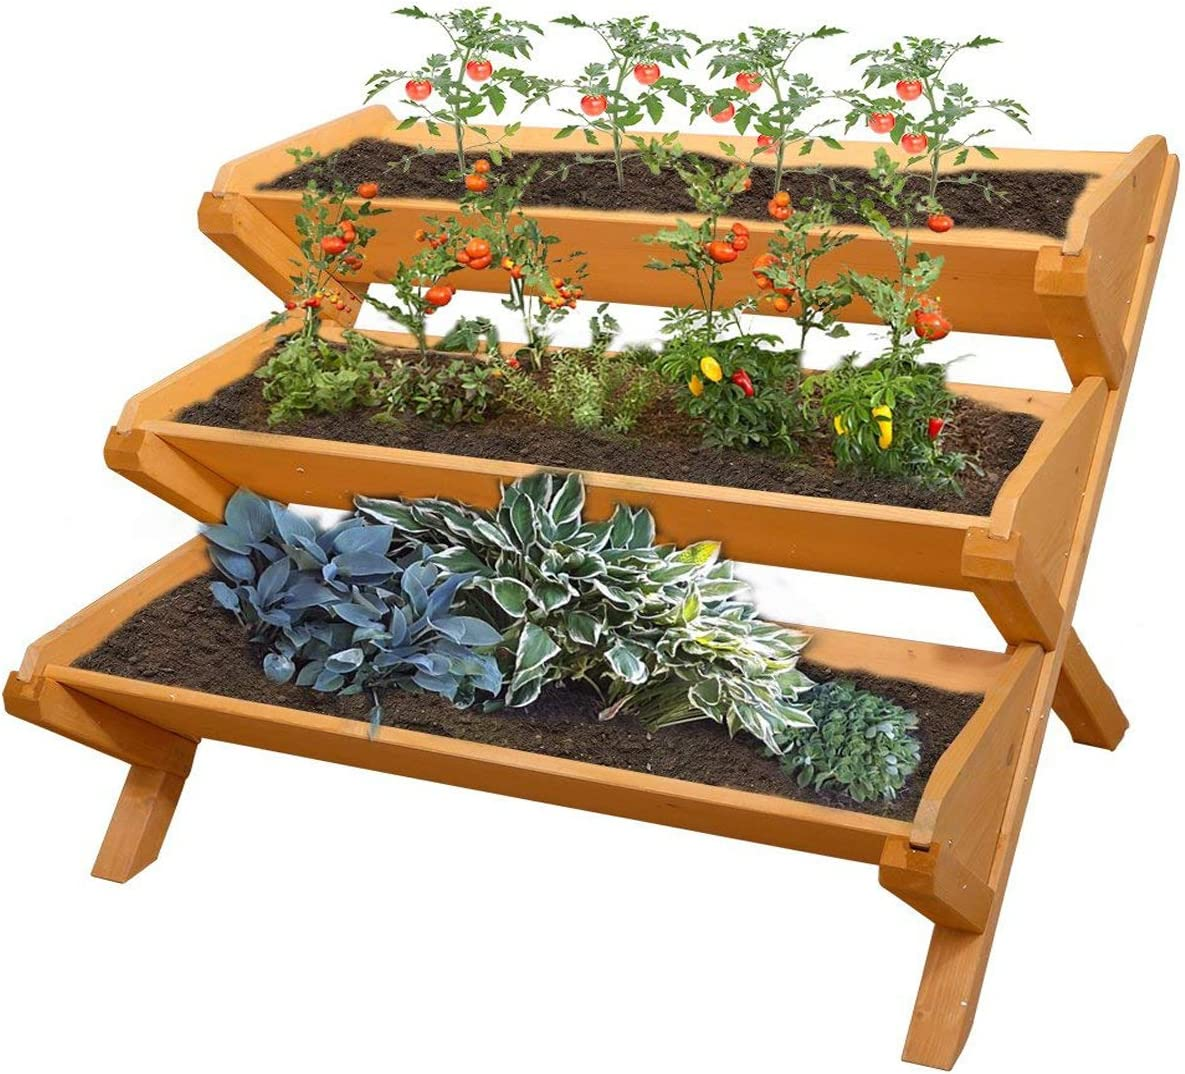 A 3 tiered raised garden planter stand for vertical gardening